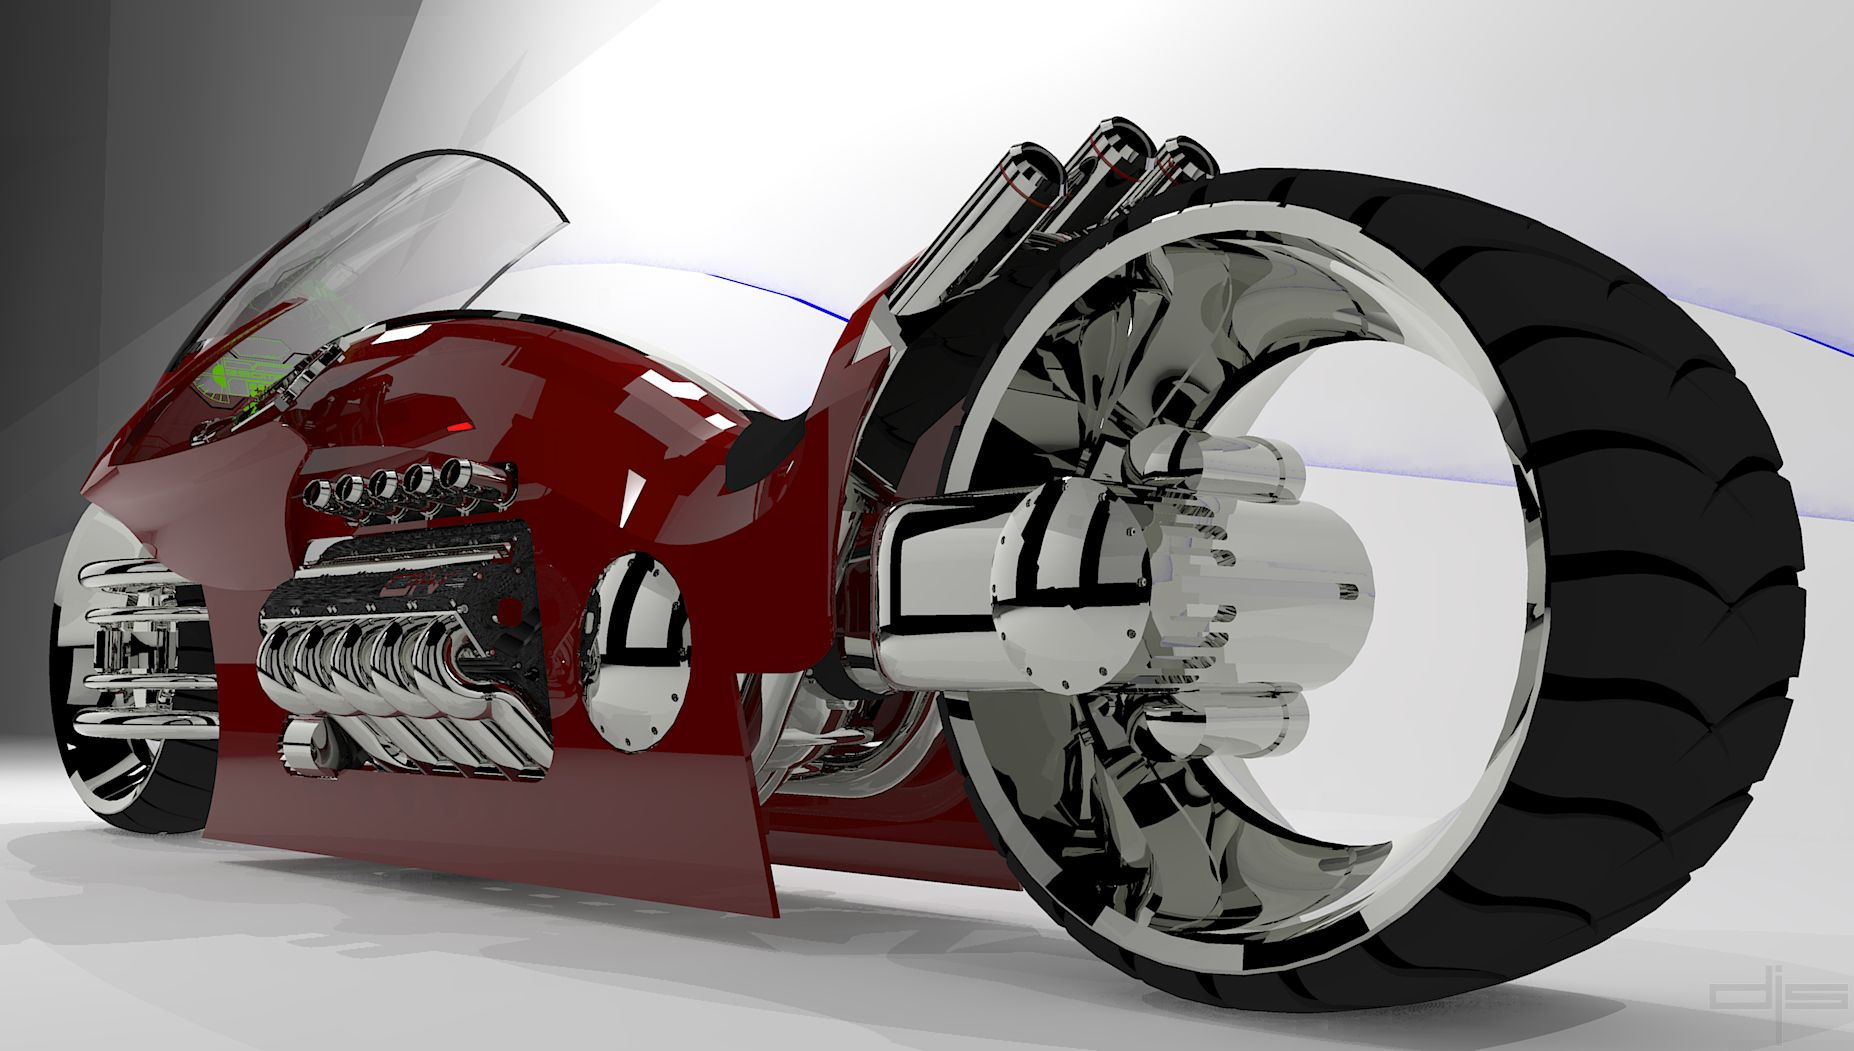 Djs61 Uploaded This Image To Concept Bike See The Album On